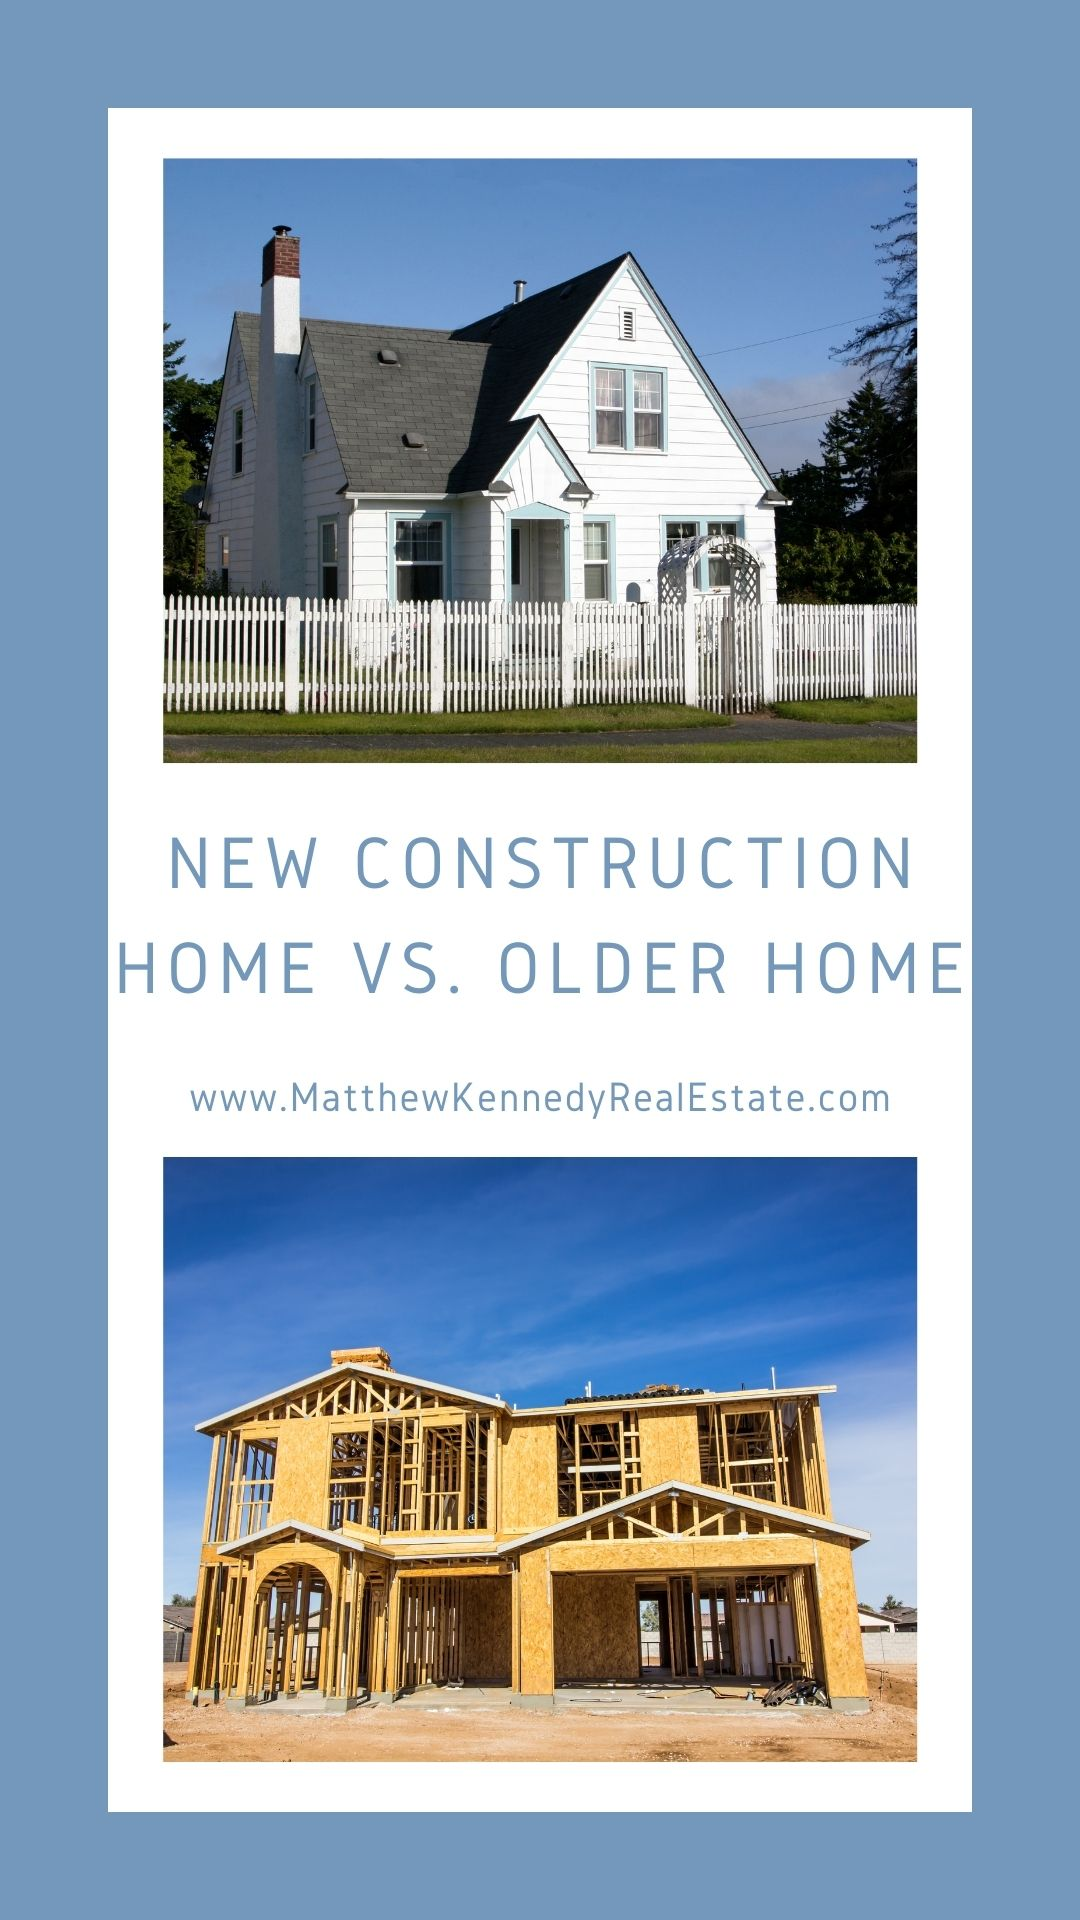 New Construction Home vs. Older Home